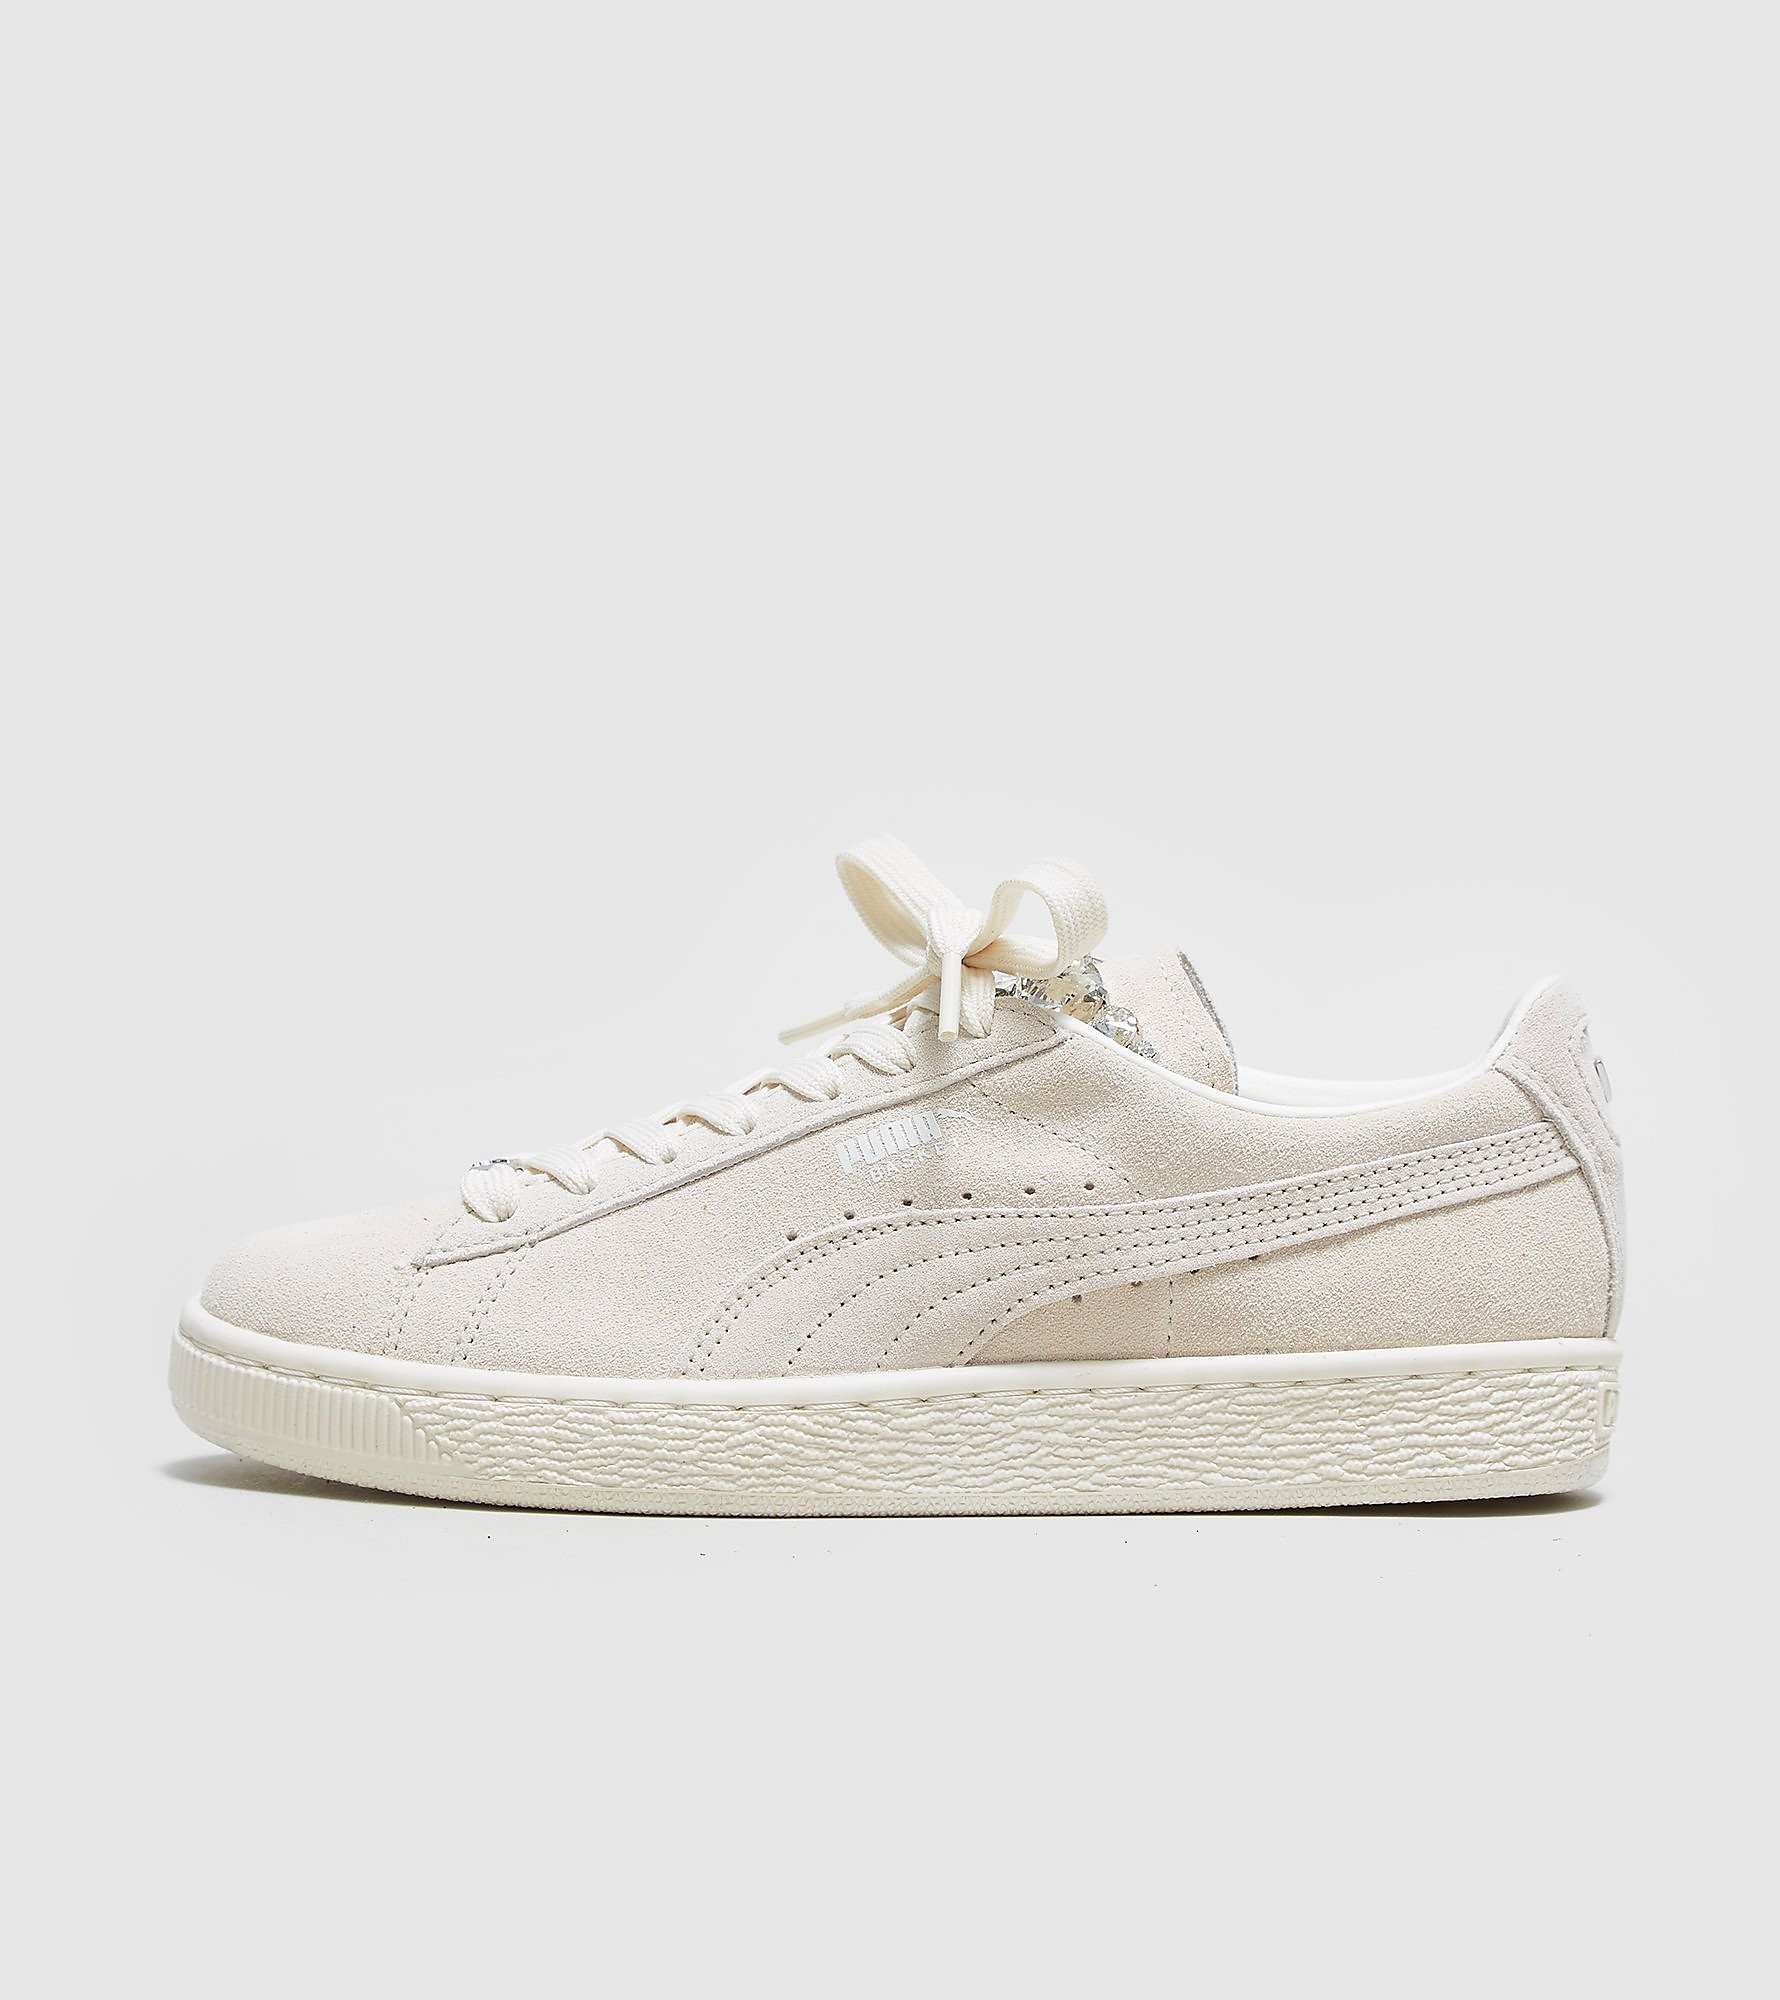 PUMA Basket Jewels Women's